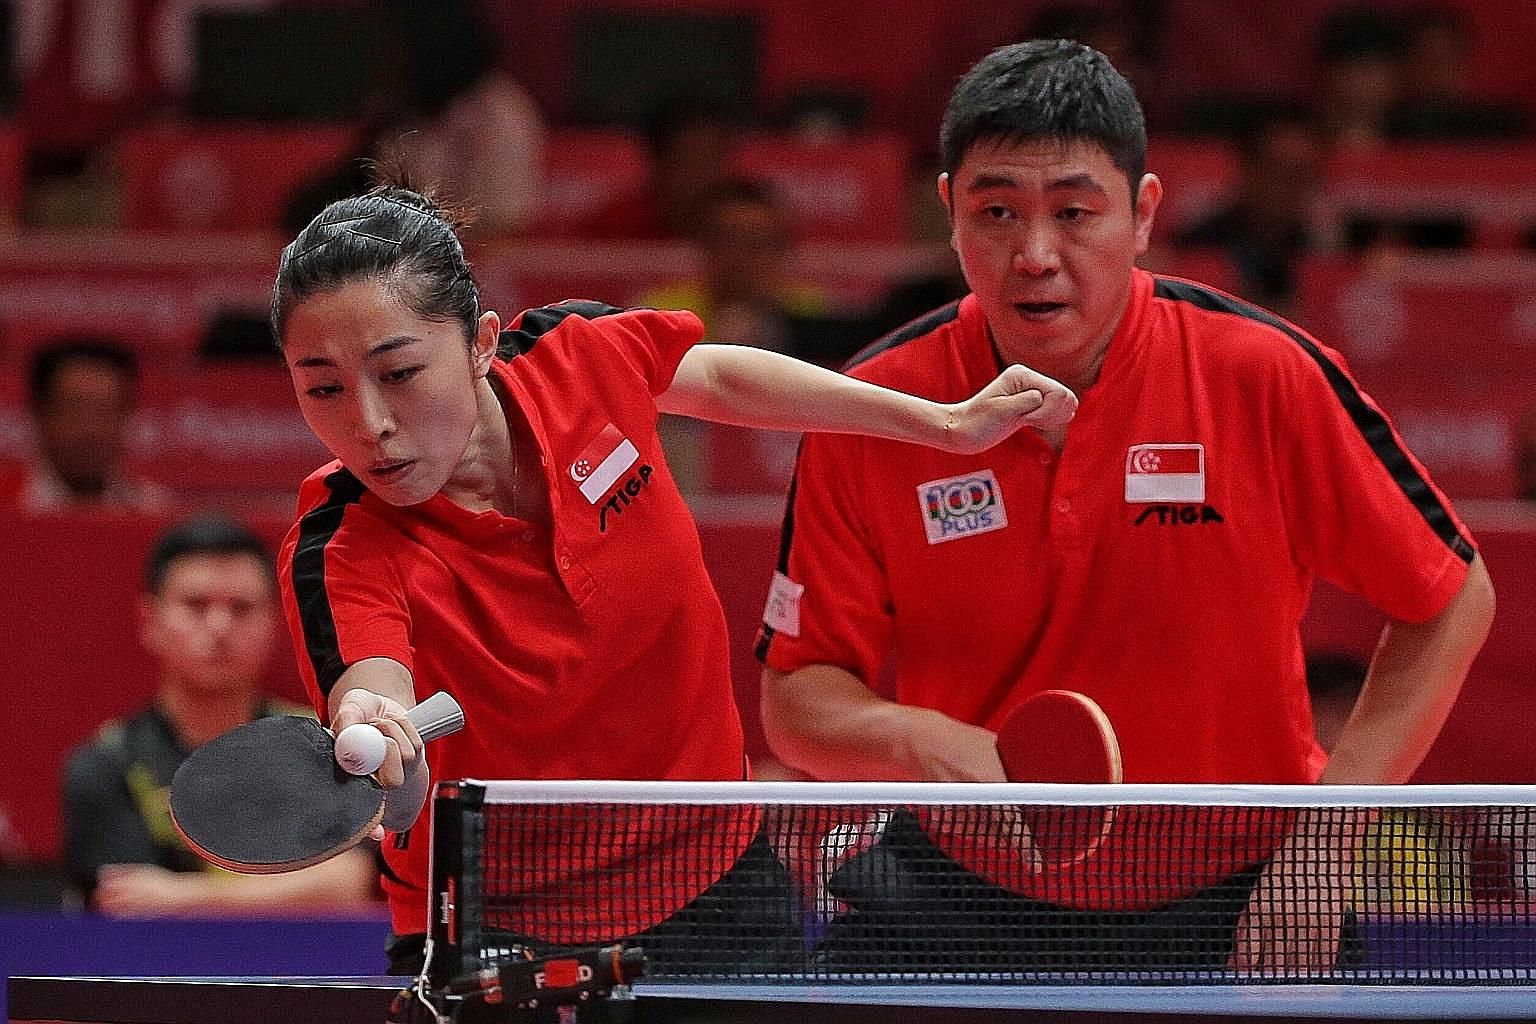 Mixed doubles pair Yu Mengyu and Gao Ning bowed out when they lost 11-9, 11-6, 11-4 to China's Wang Chuqin and Sun Yingsha in the quarter-finals.